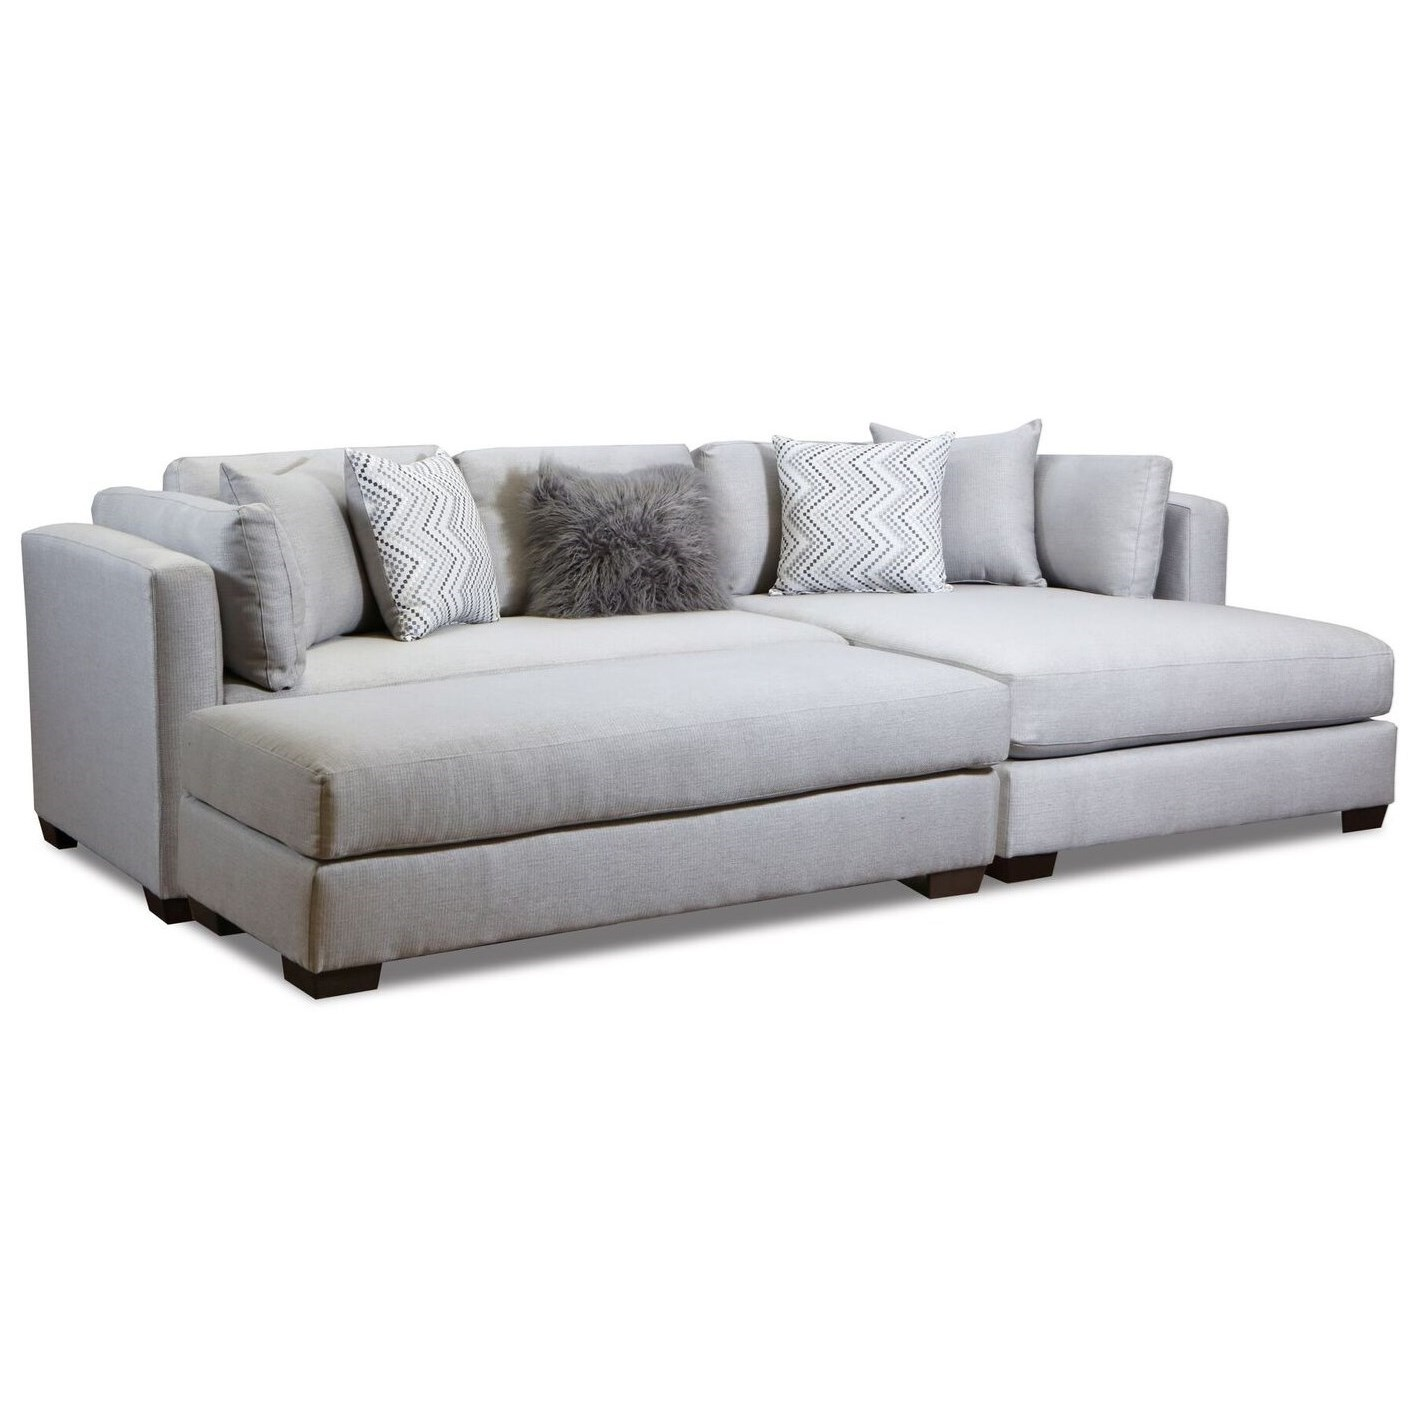 5500 Chaise-Inspired Sectional Sofa by Peak Living at Prime Brothers Furniture